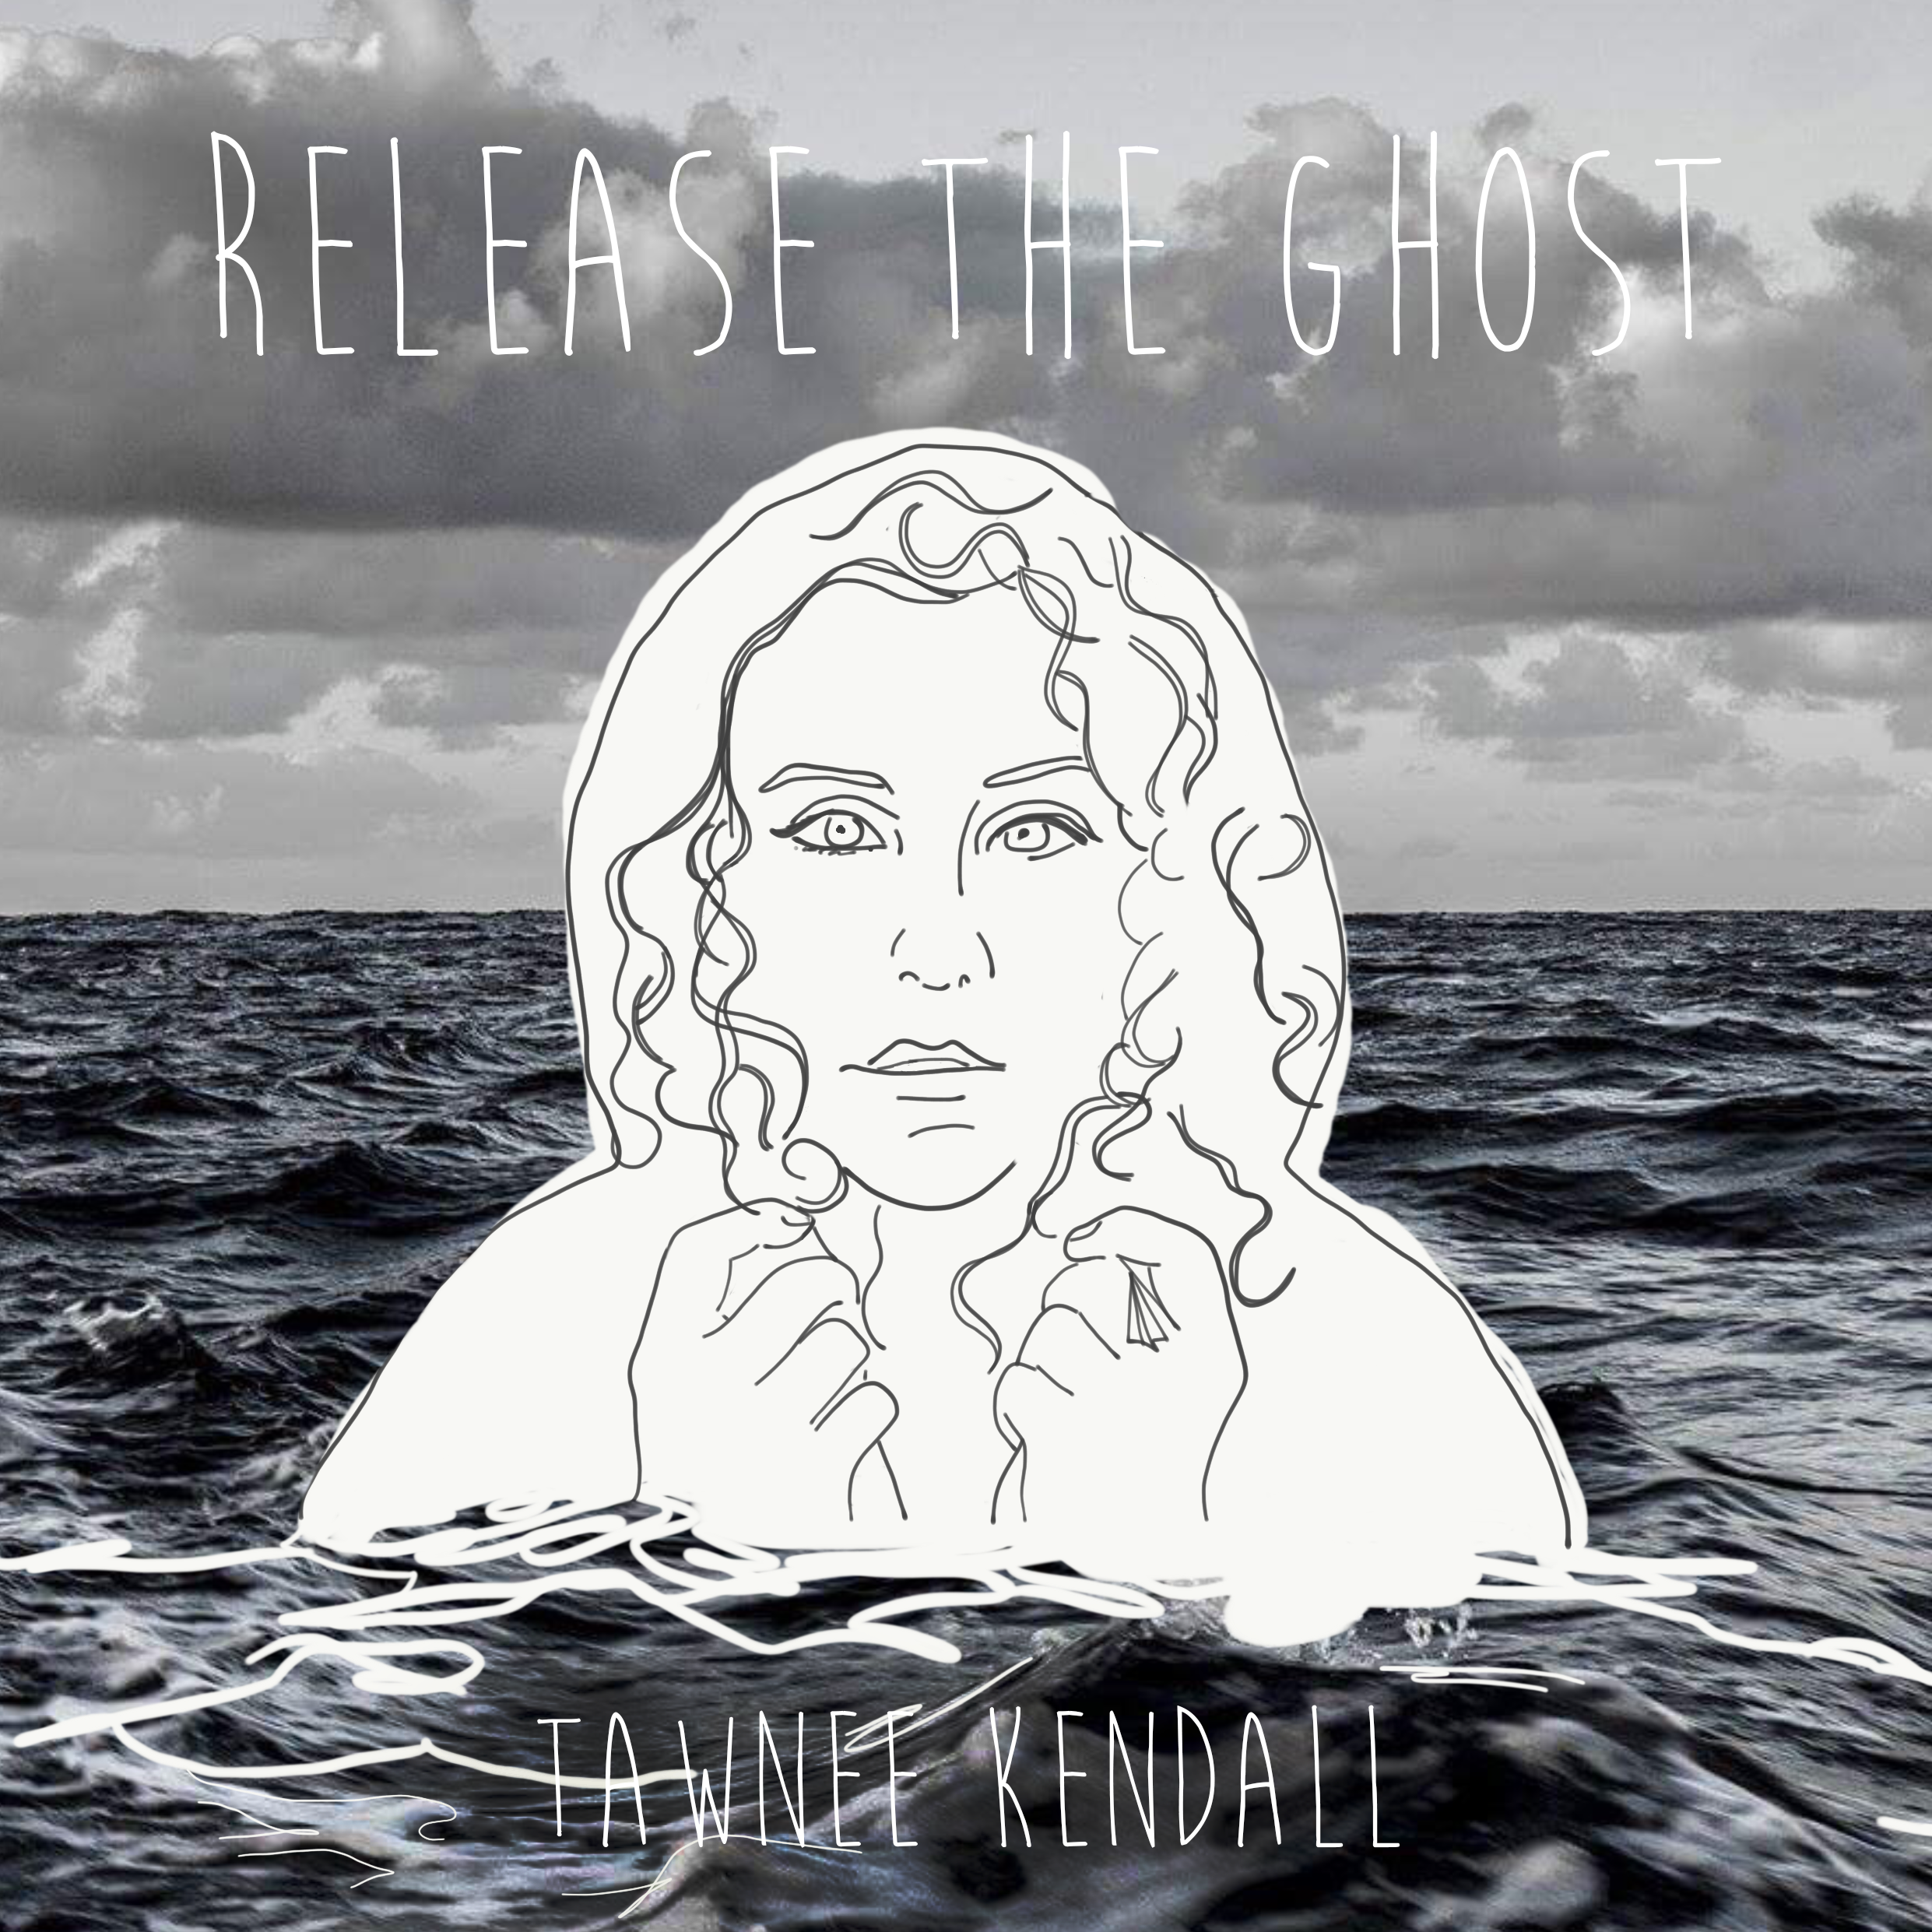 Release The Ghost, my third EP, is now available for purchase and streaming!